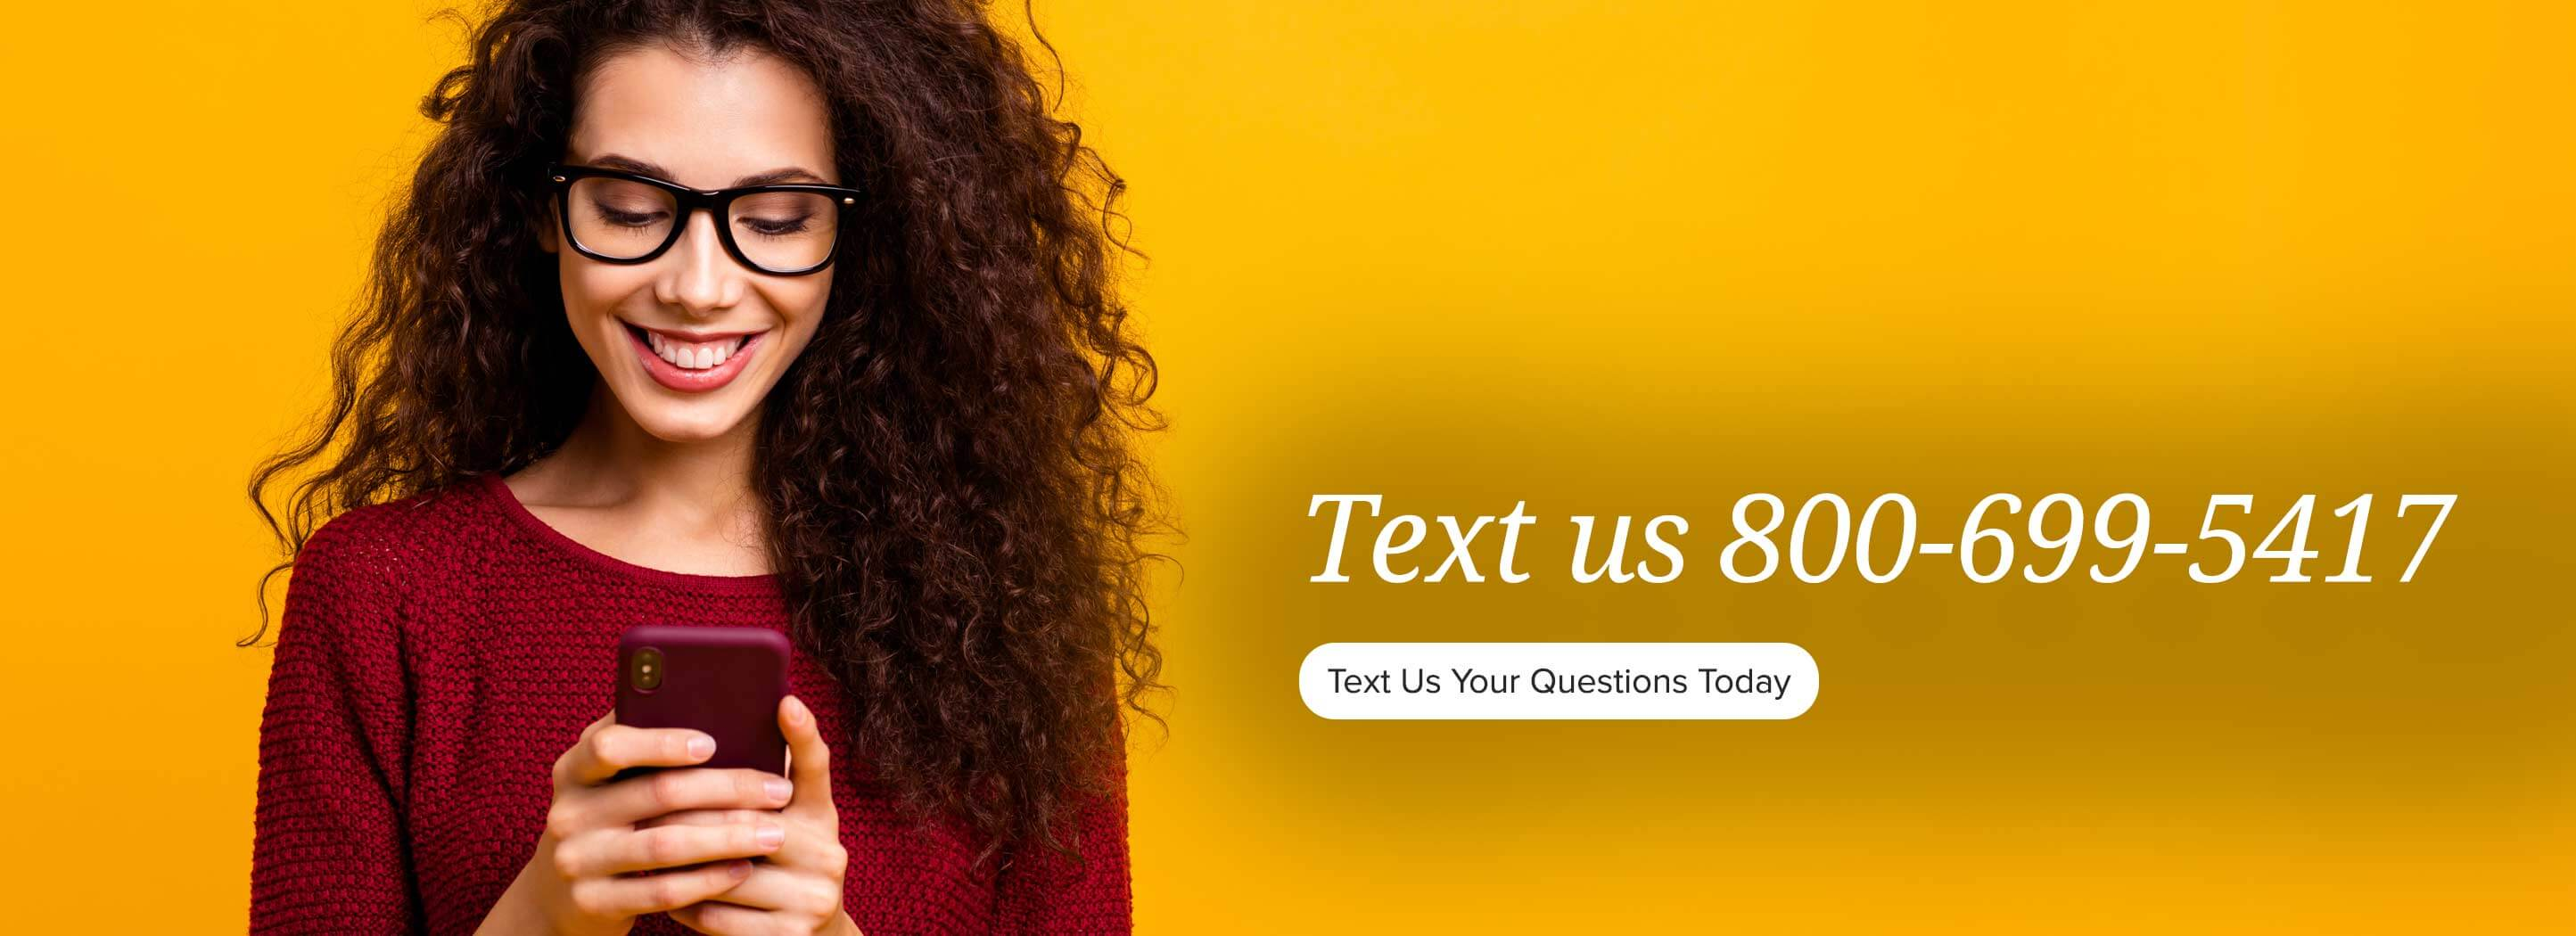 Text us 800-699-5417. Text us your questions today